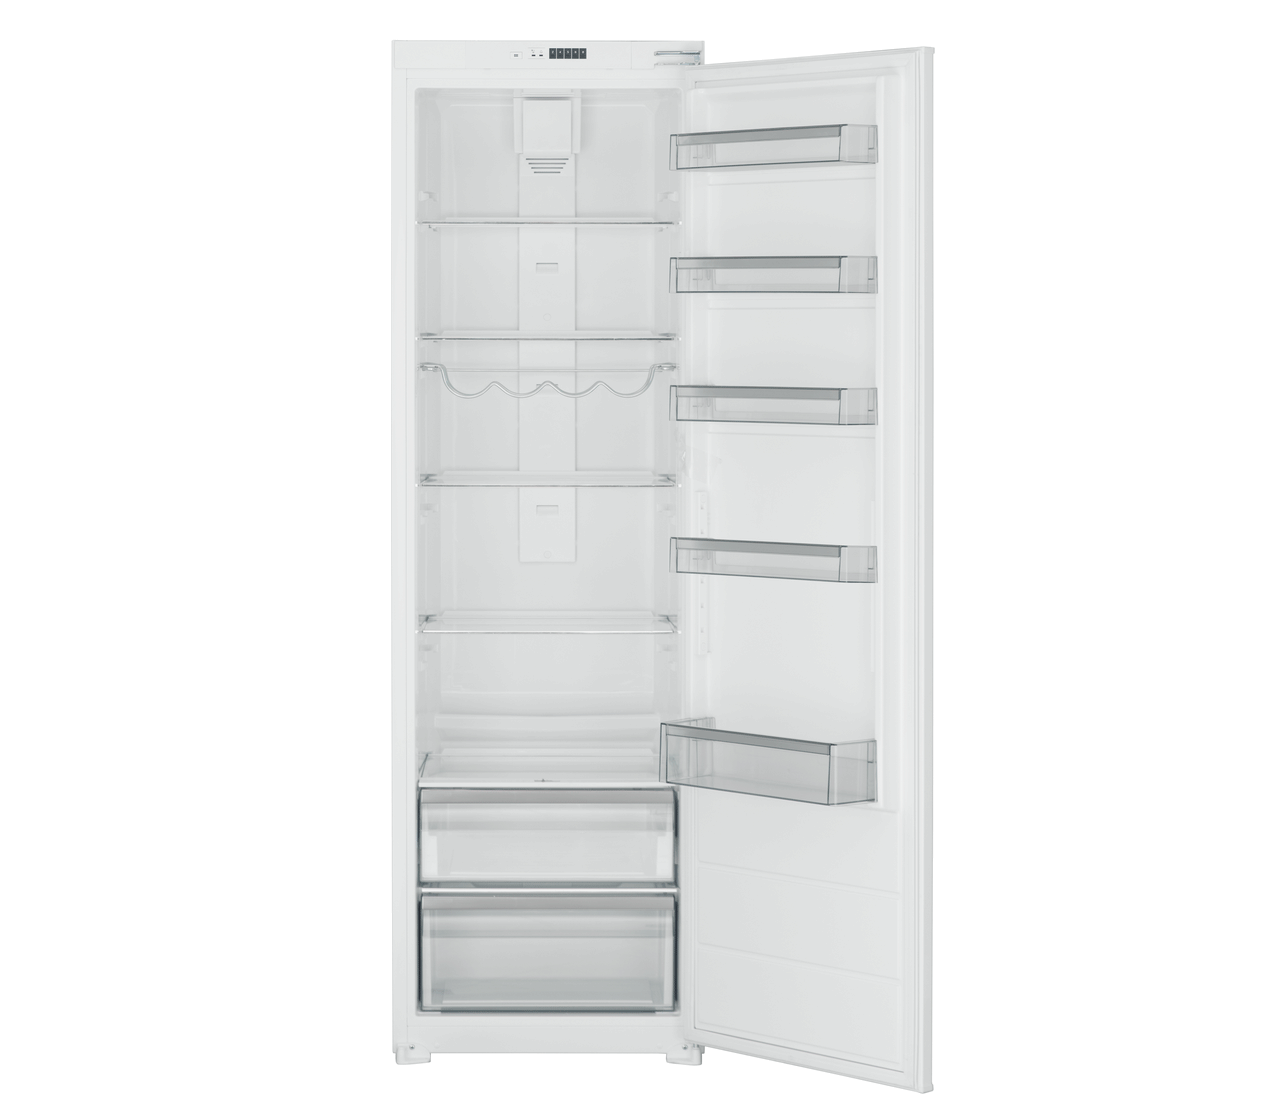 Belling Integrated Tall Larder Fridge | BIL305